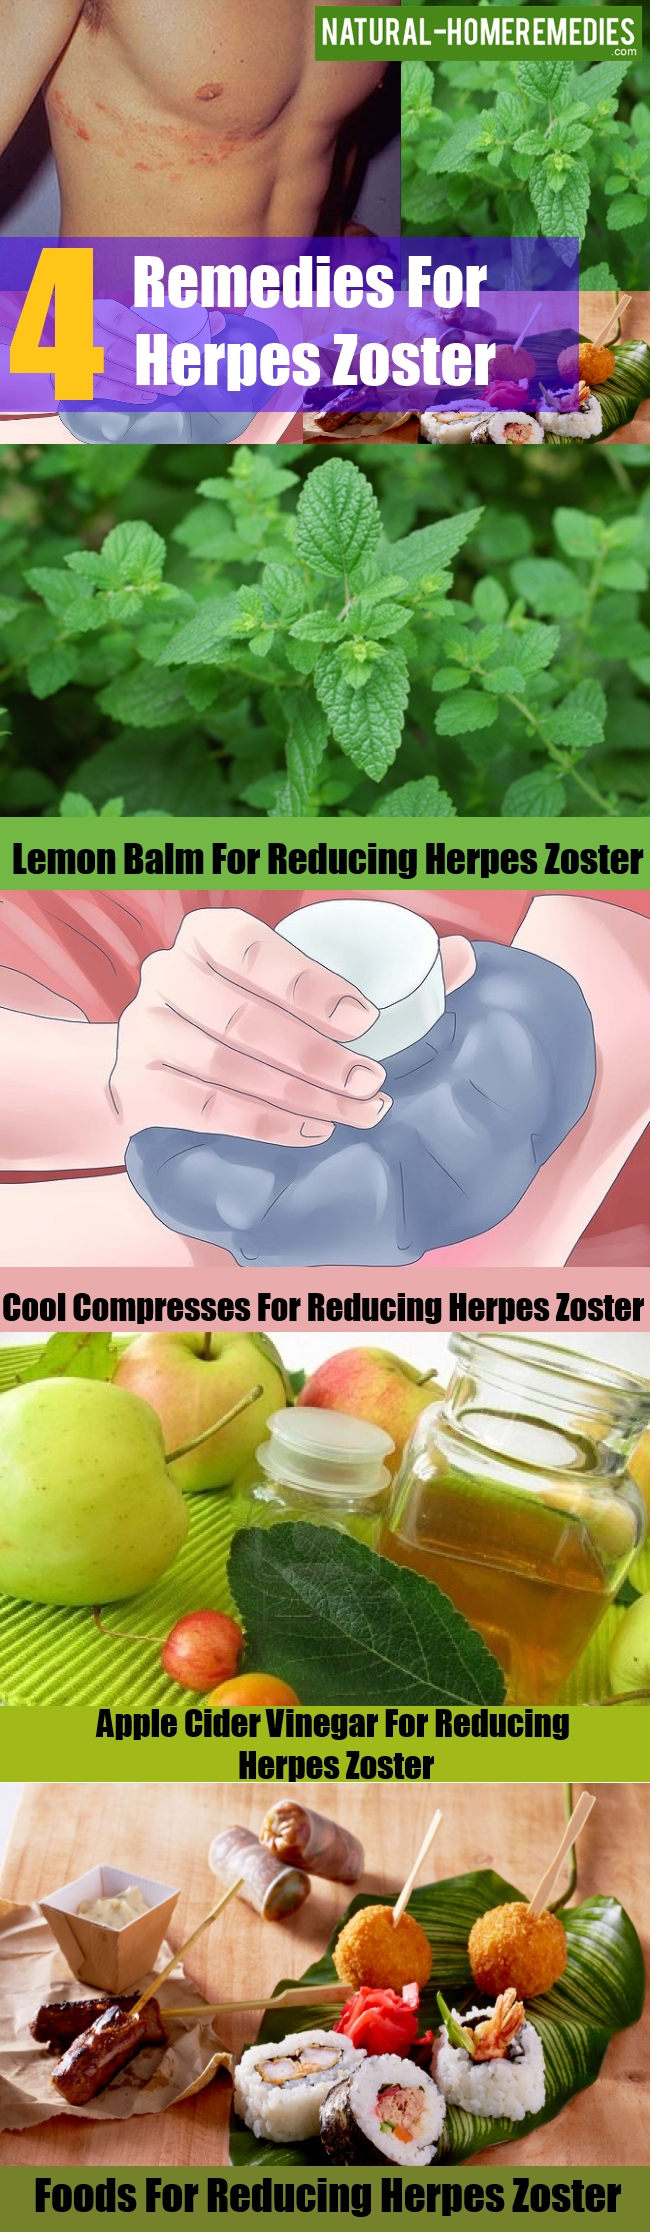 Remedies For Herpes Zoster